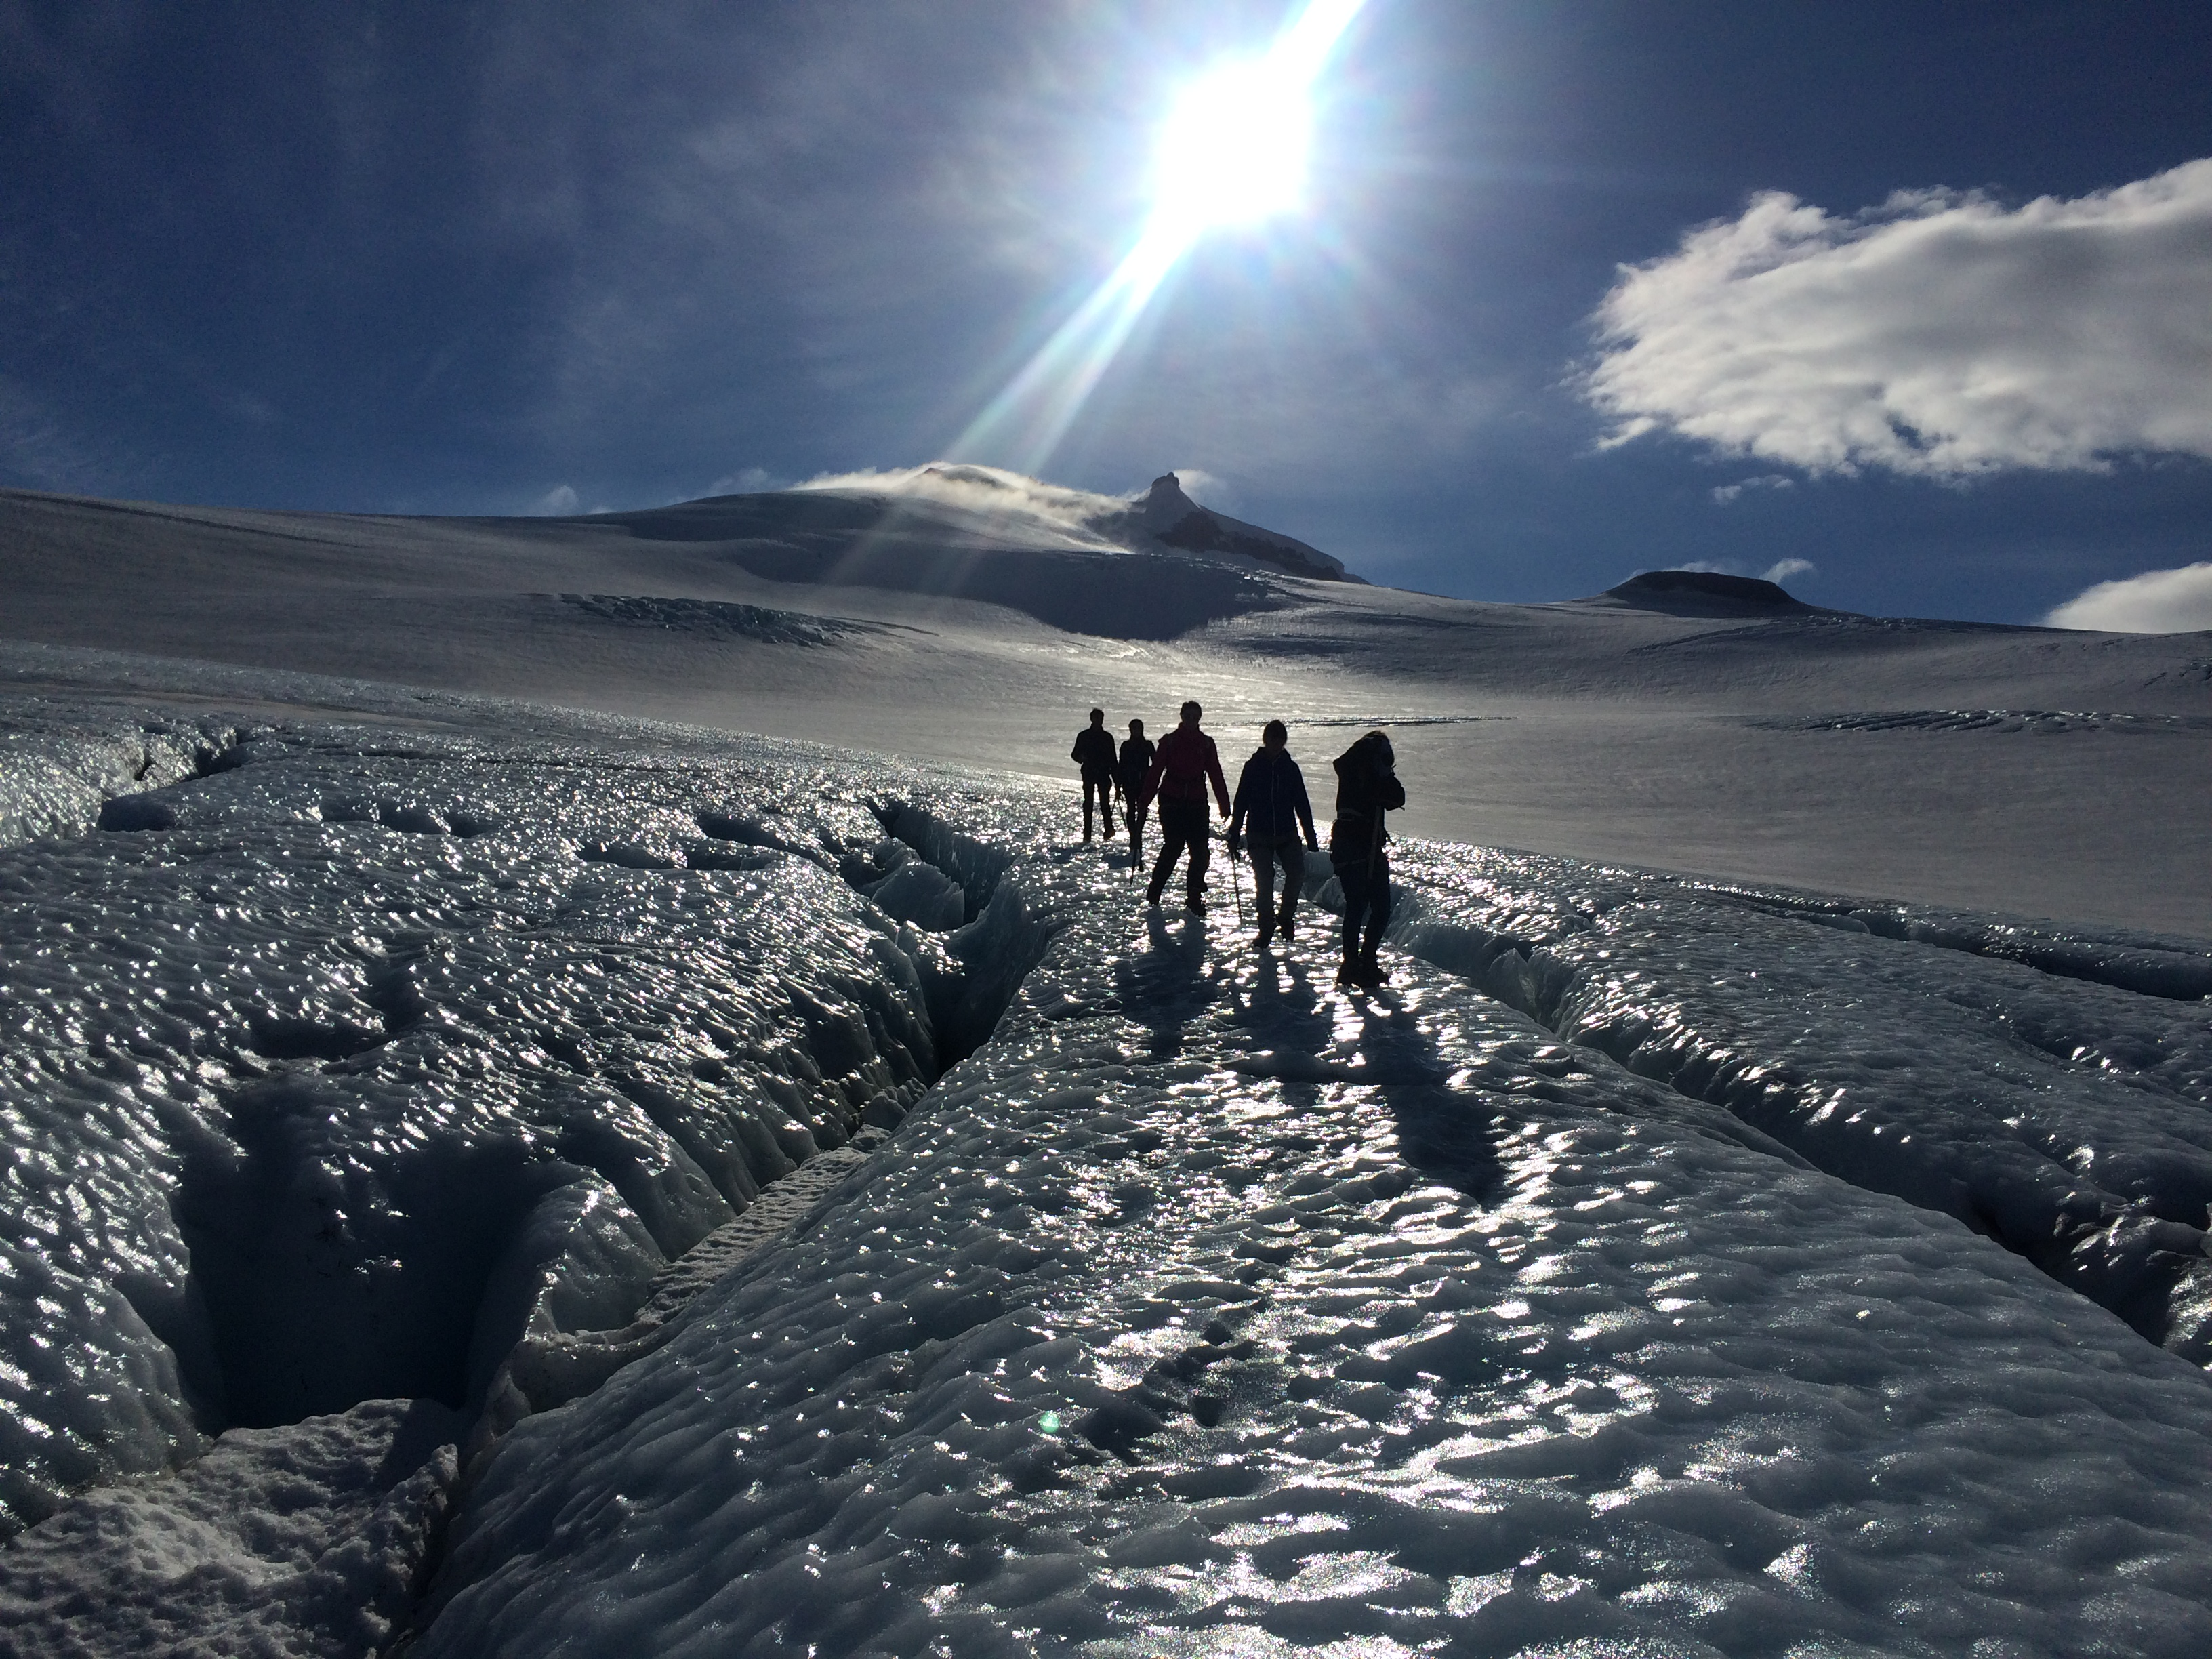 Short walk on glacial ice